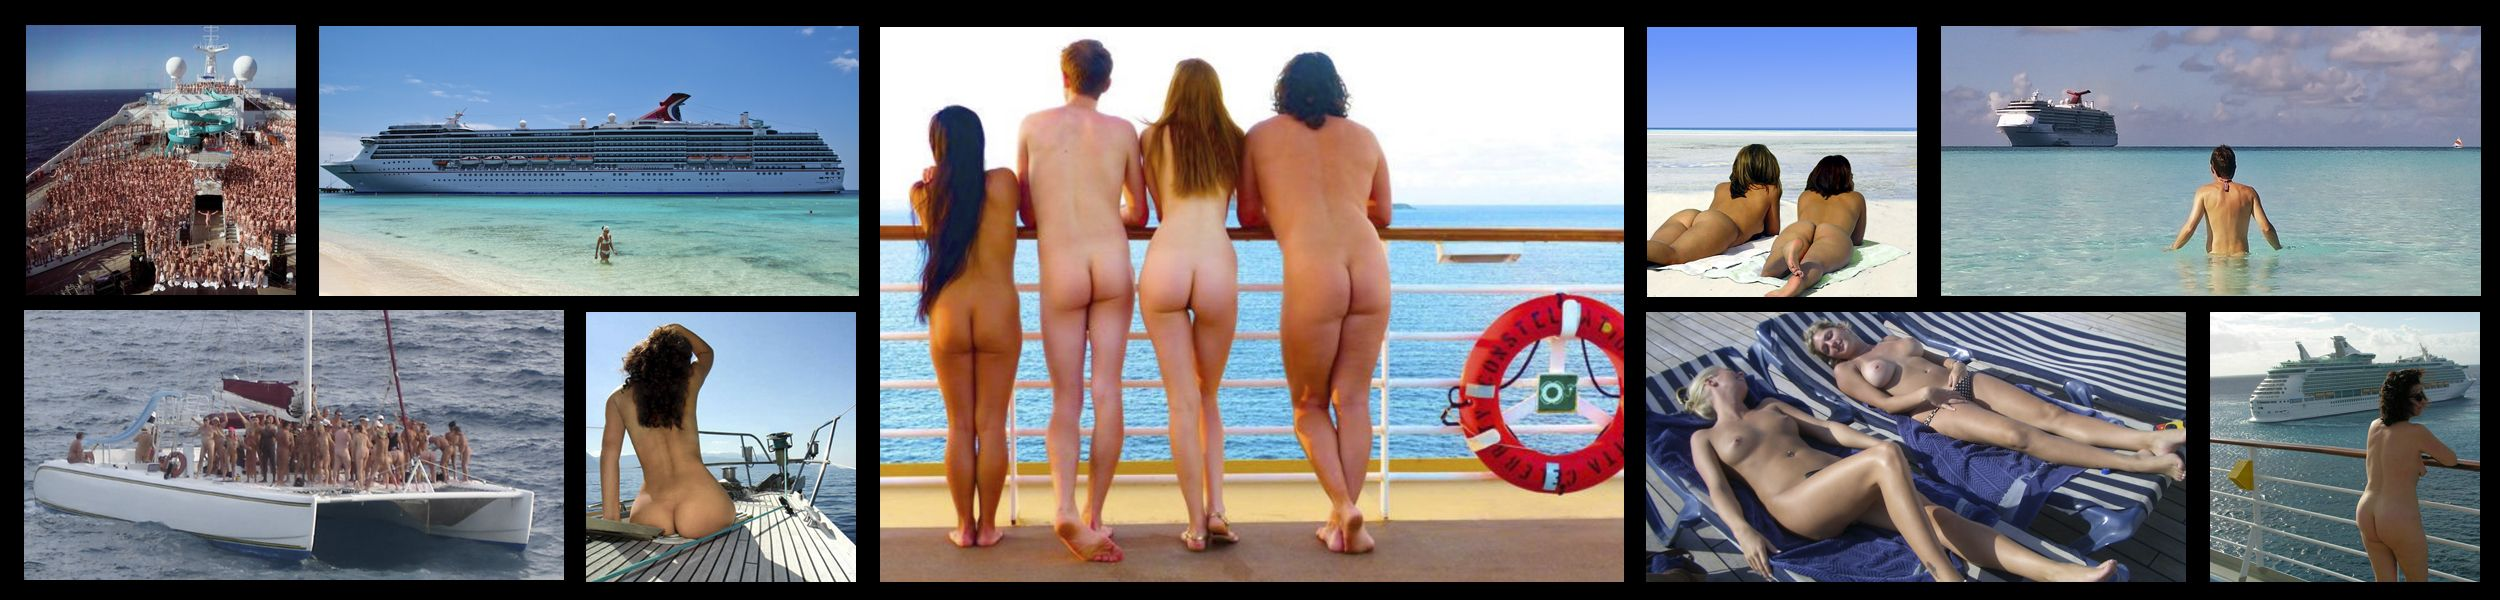 Video. High swinger resort in maroco like funny